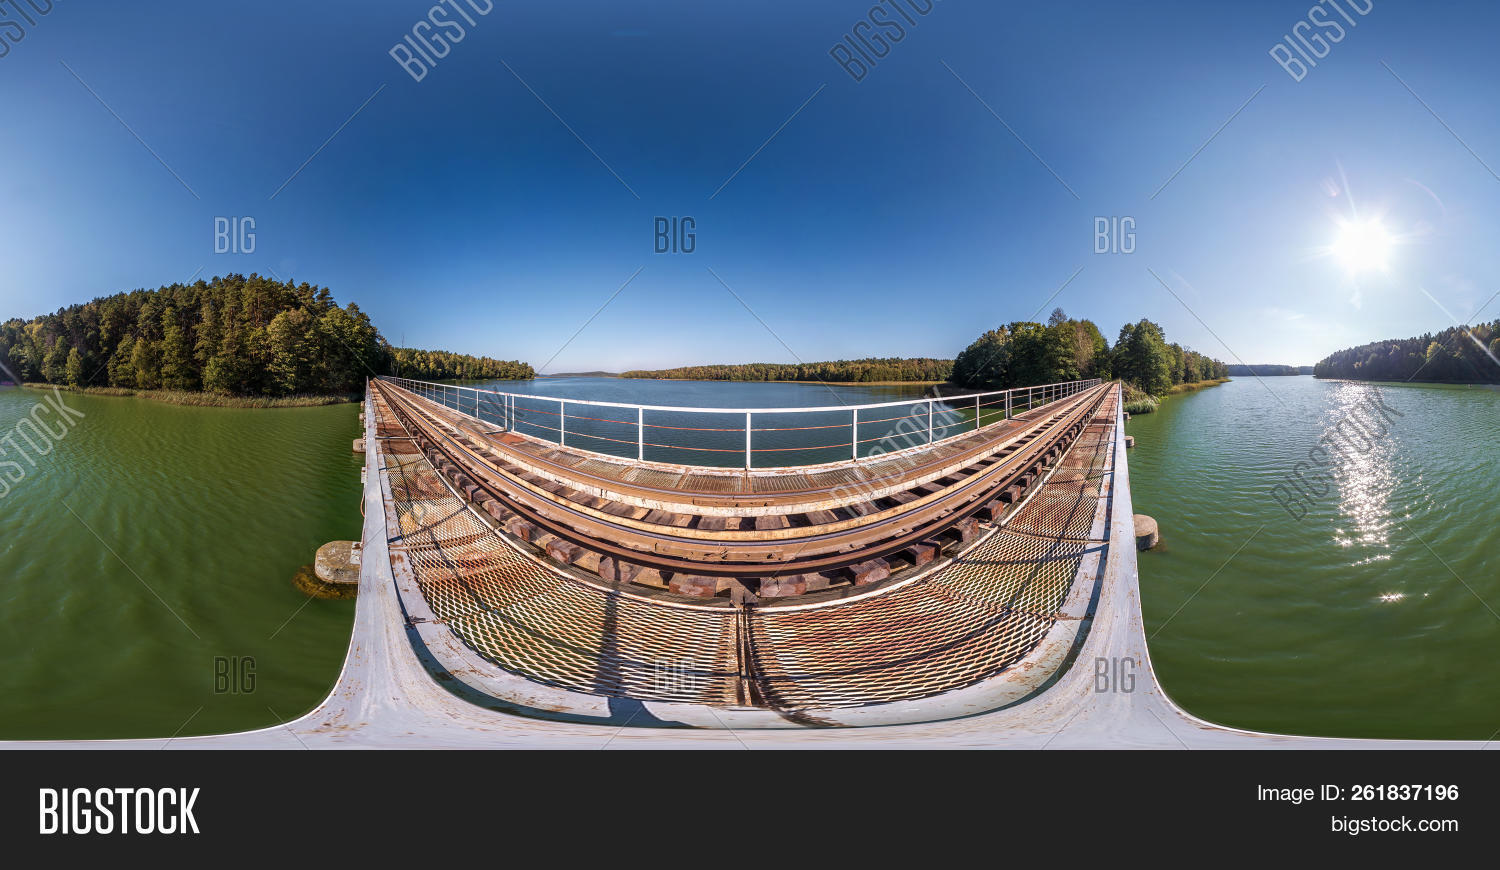 🔥 Full Spherical 360 Degrees Angle View Panorama On Steel Frame